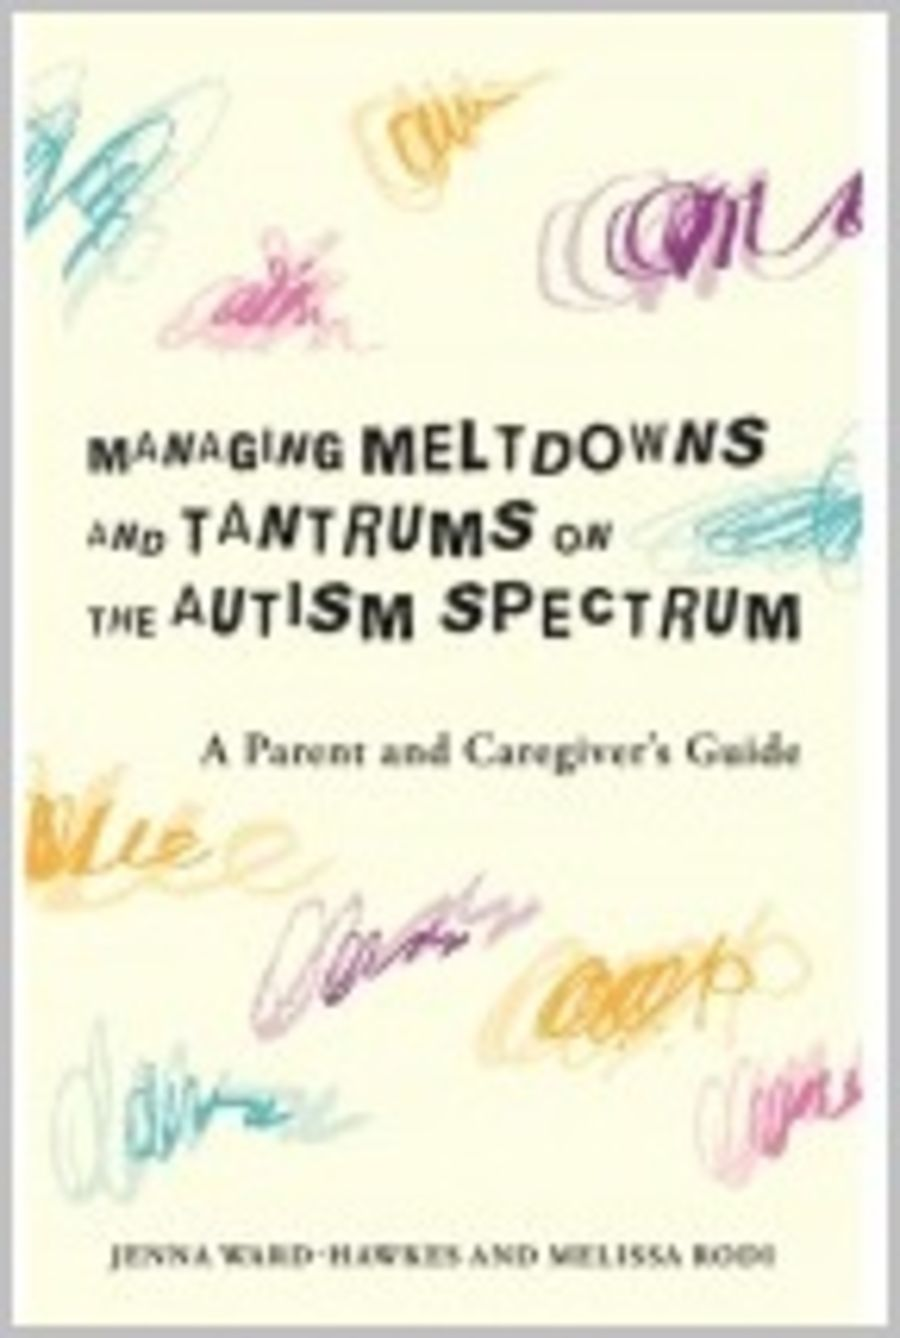 Managing Meltdowns and Tantrums on the Autism Specturm